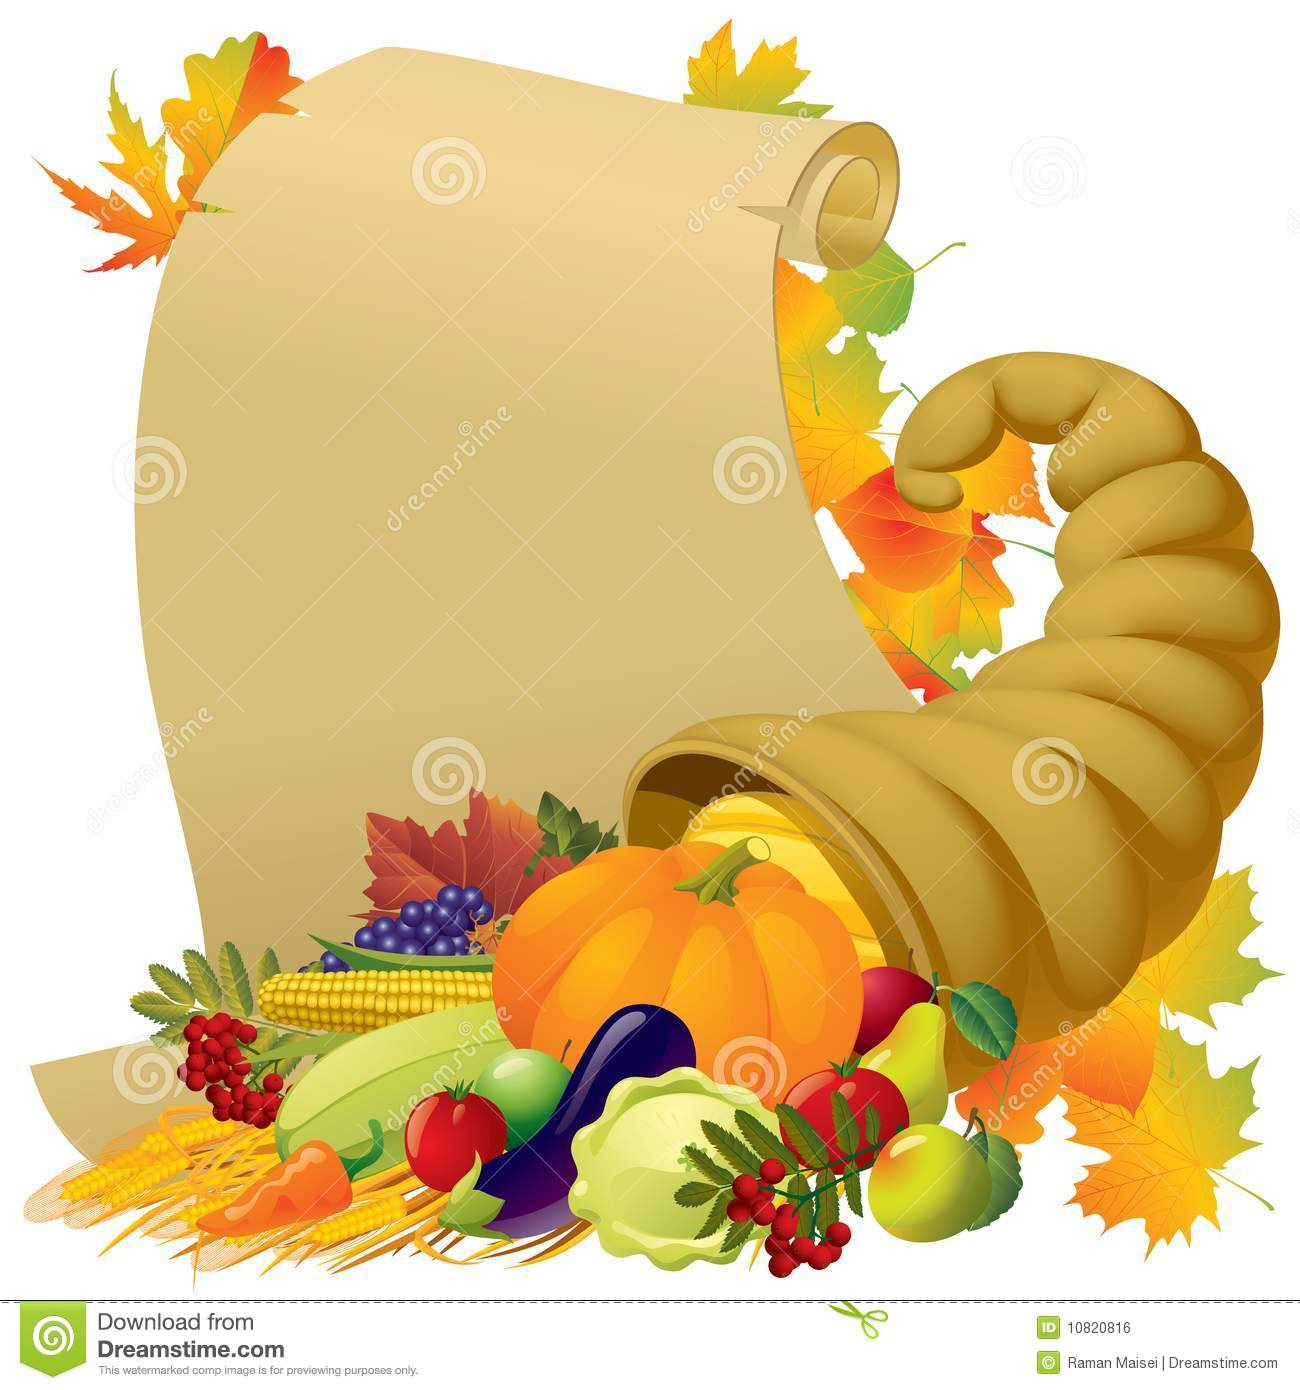 Thanksgiving Banner Royalty Free Stock Image  Image 10820816. Milk Signs Of Stroke. Commercial Wall Murals. Special Banners. Mailer Stickers. Custom Stickers Online. Deep Water Signs Of Stroke. Nike Signs Of Stroke. Street Stickers